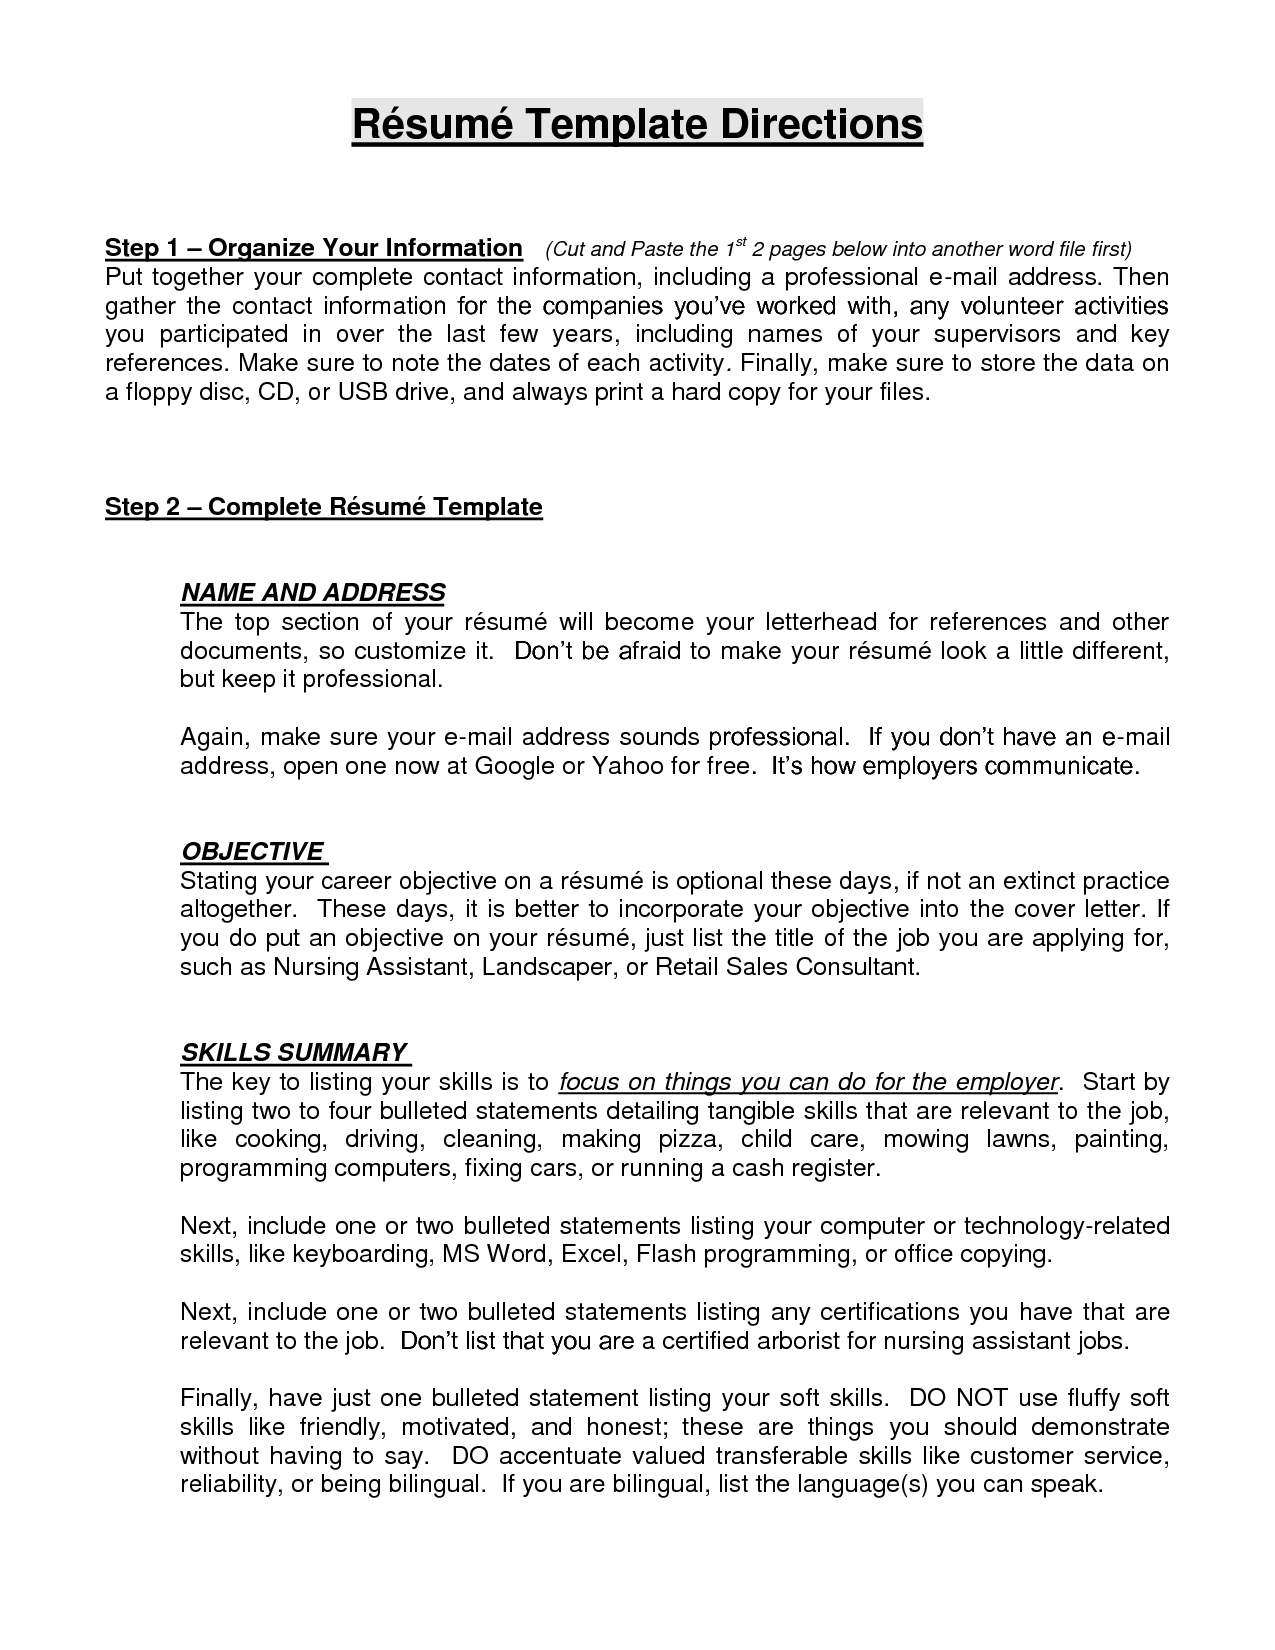 resume building objective statement - Excellent Resume Objective Statements